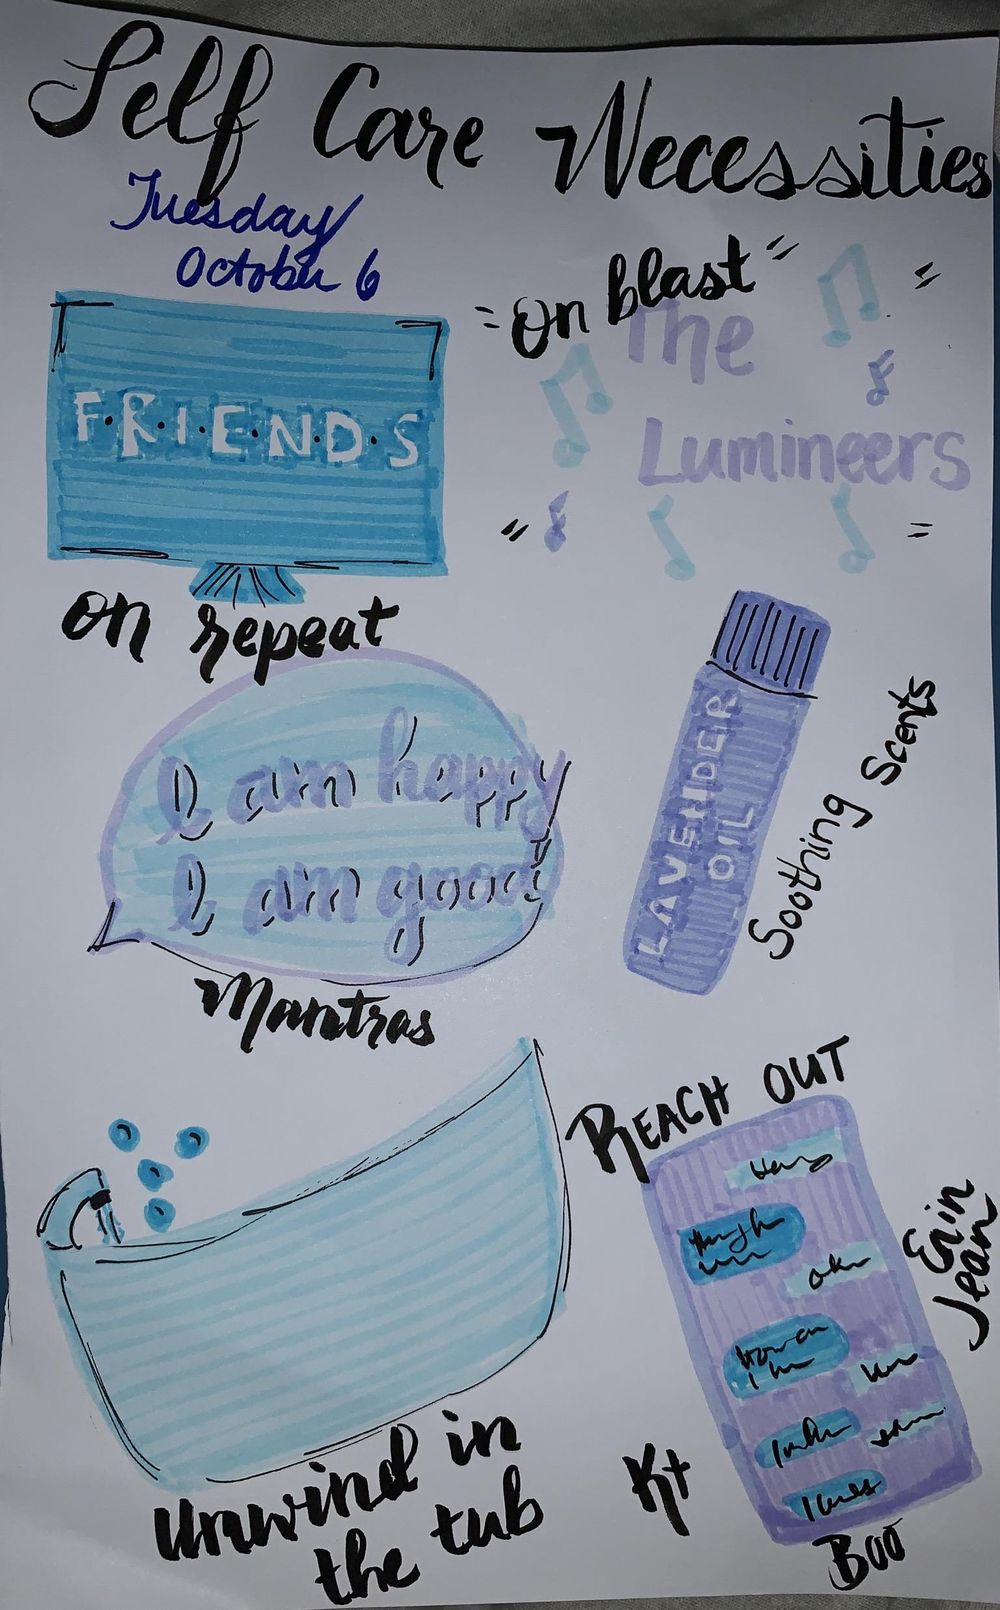 Illustrated Journaling journey - image 6 - student project